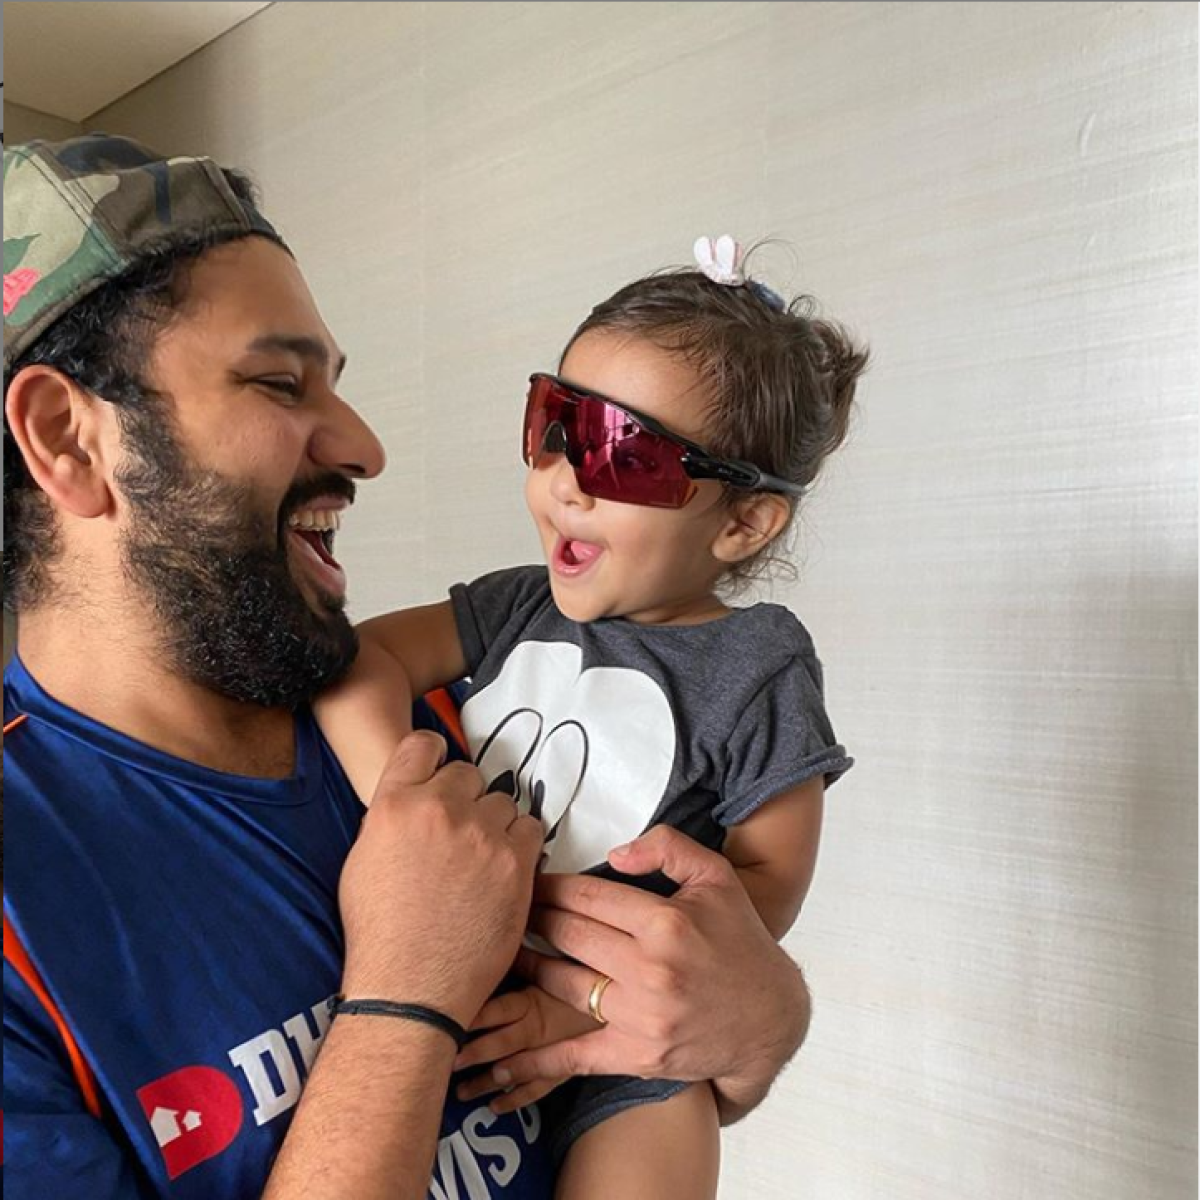 'She wears it better than dada': Rohit Sharma shares adorable picture of Samaira wearing sunglasses